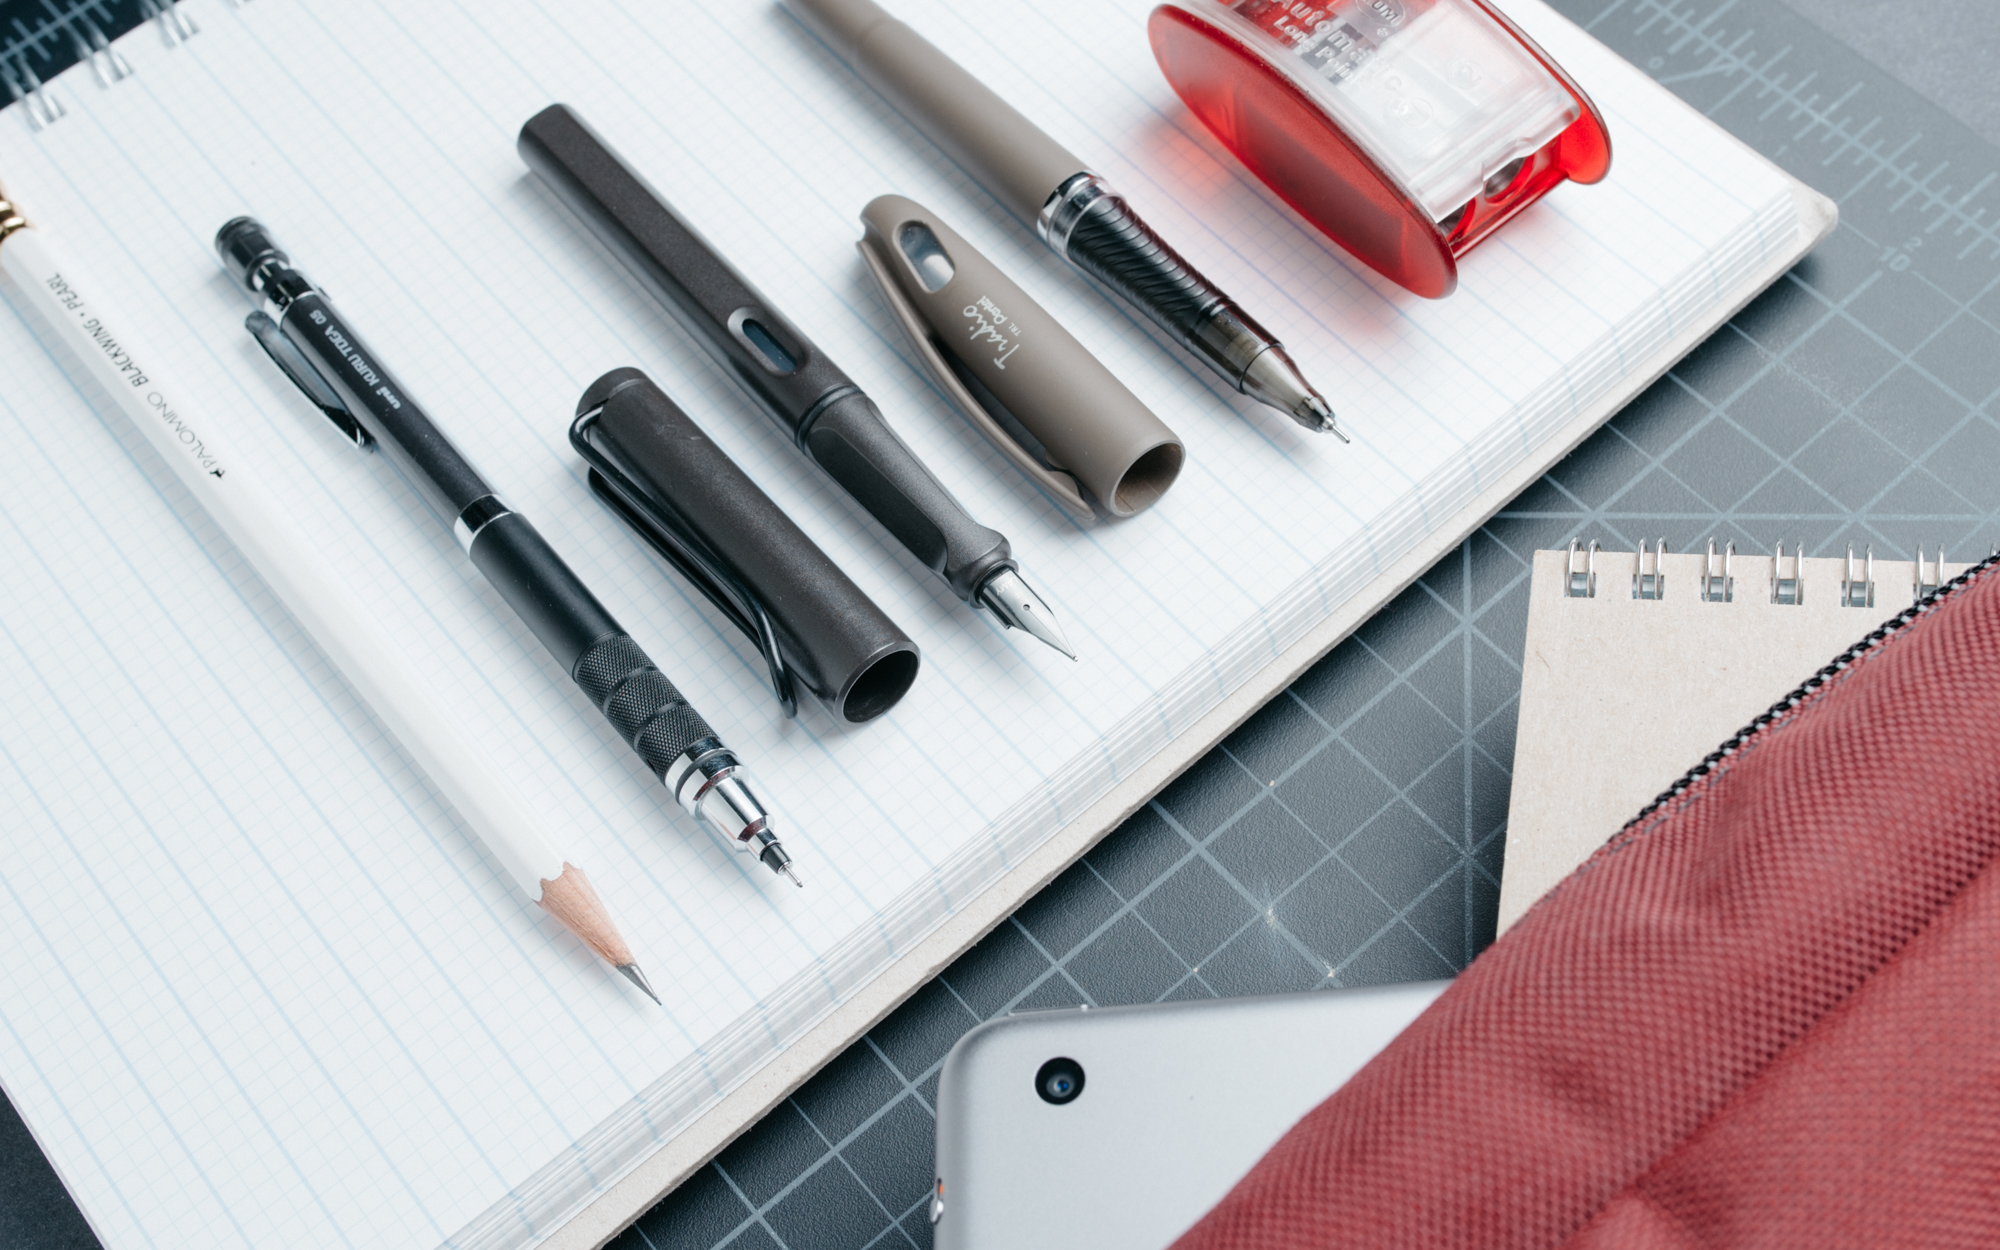 The Best EDC Pens for School and Work in 2020